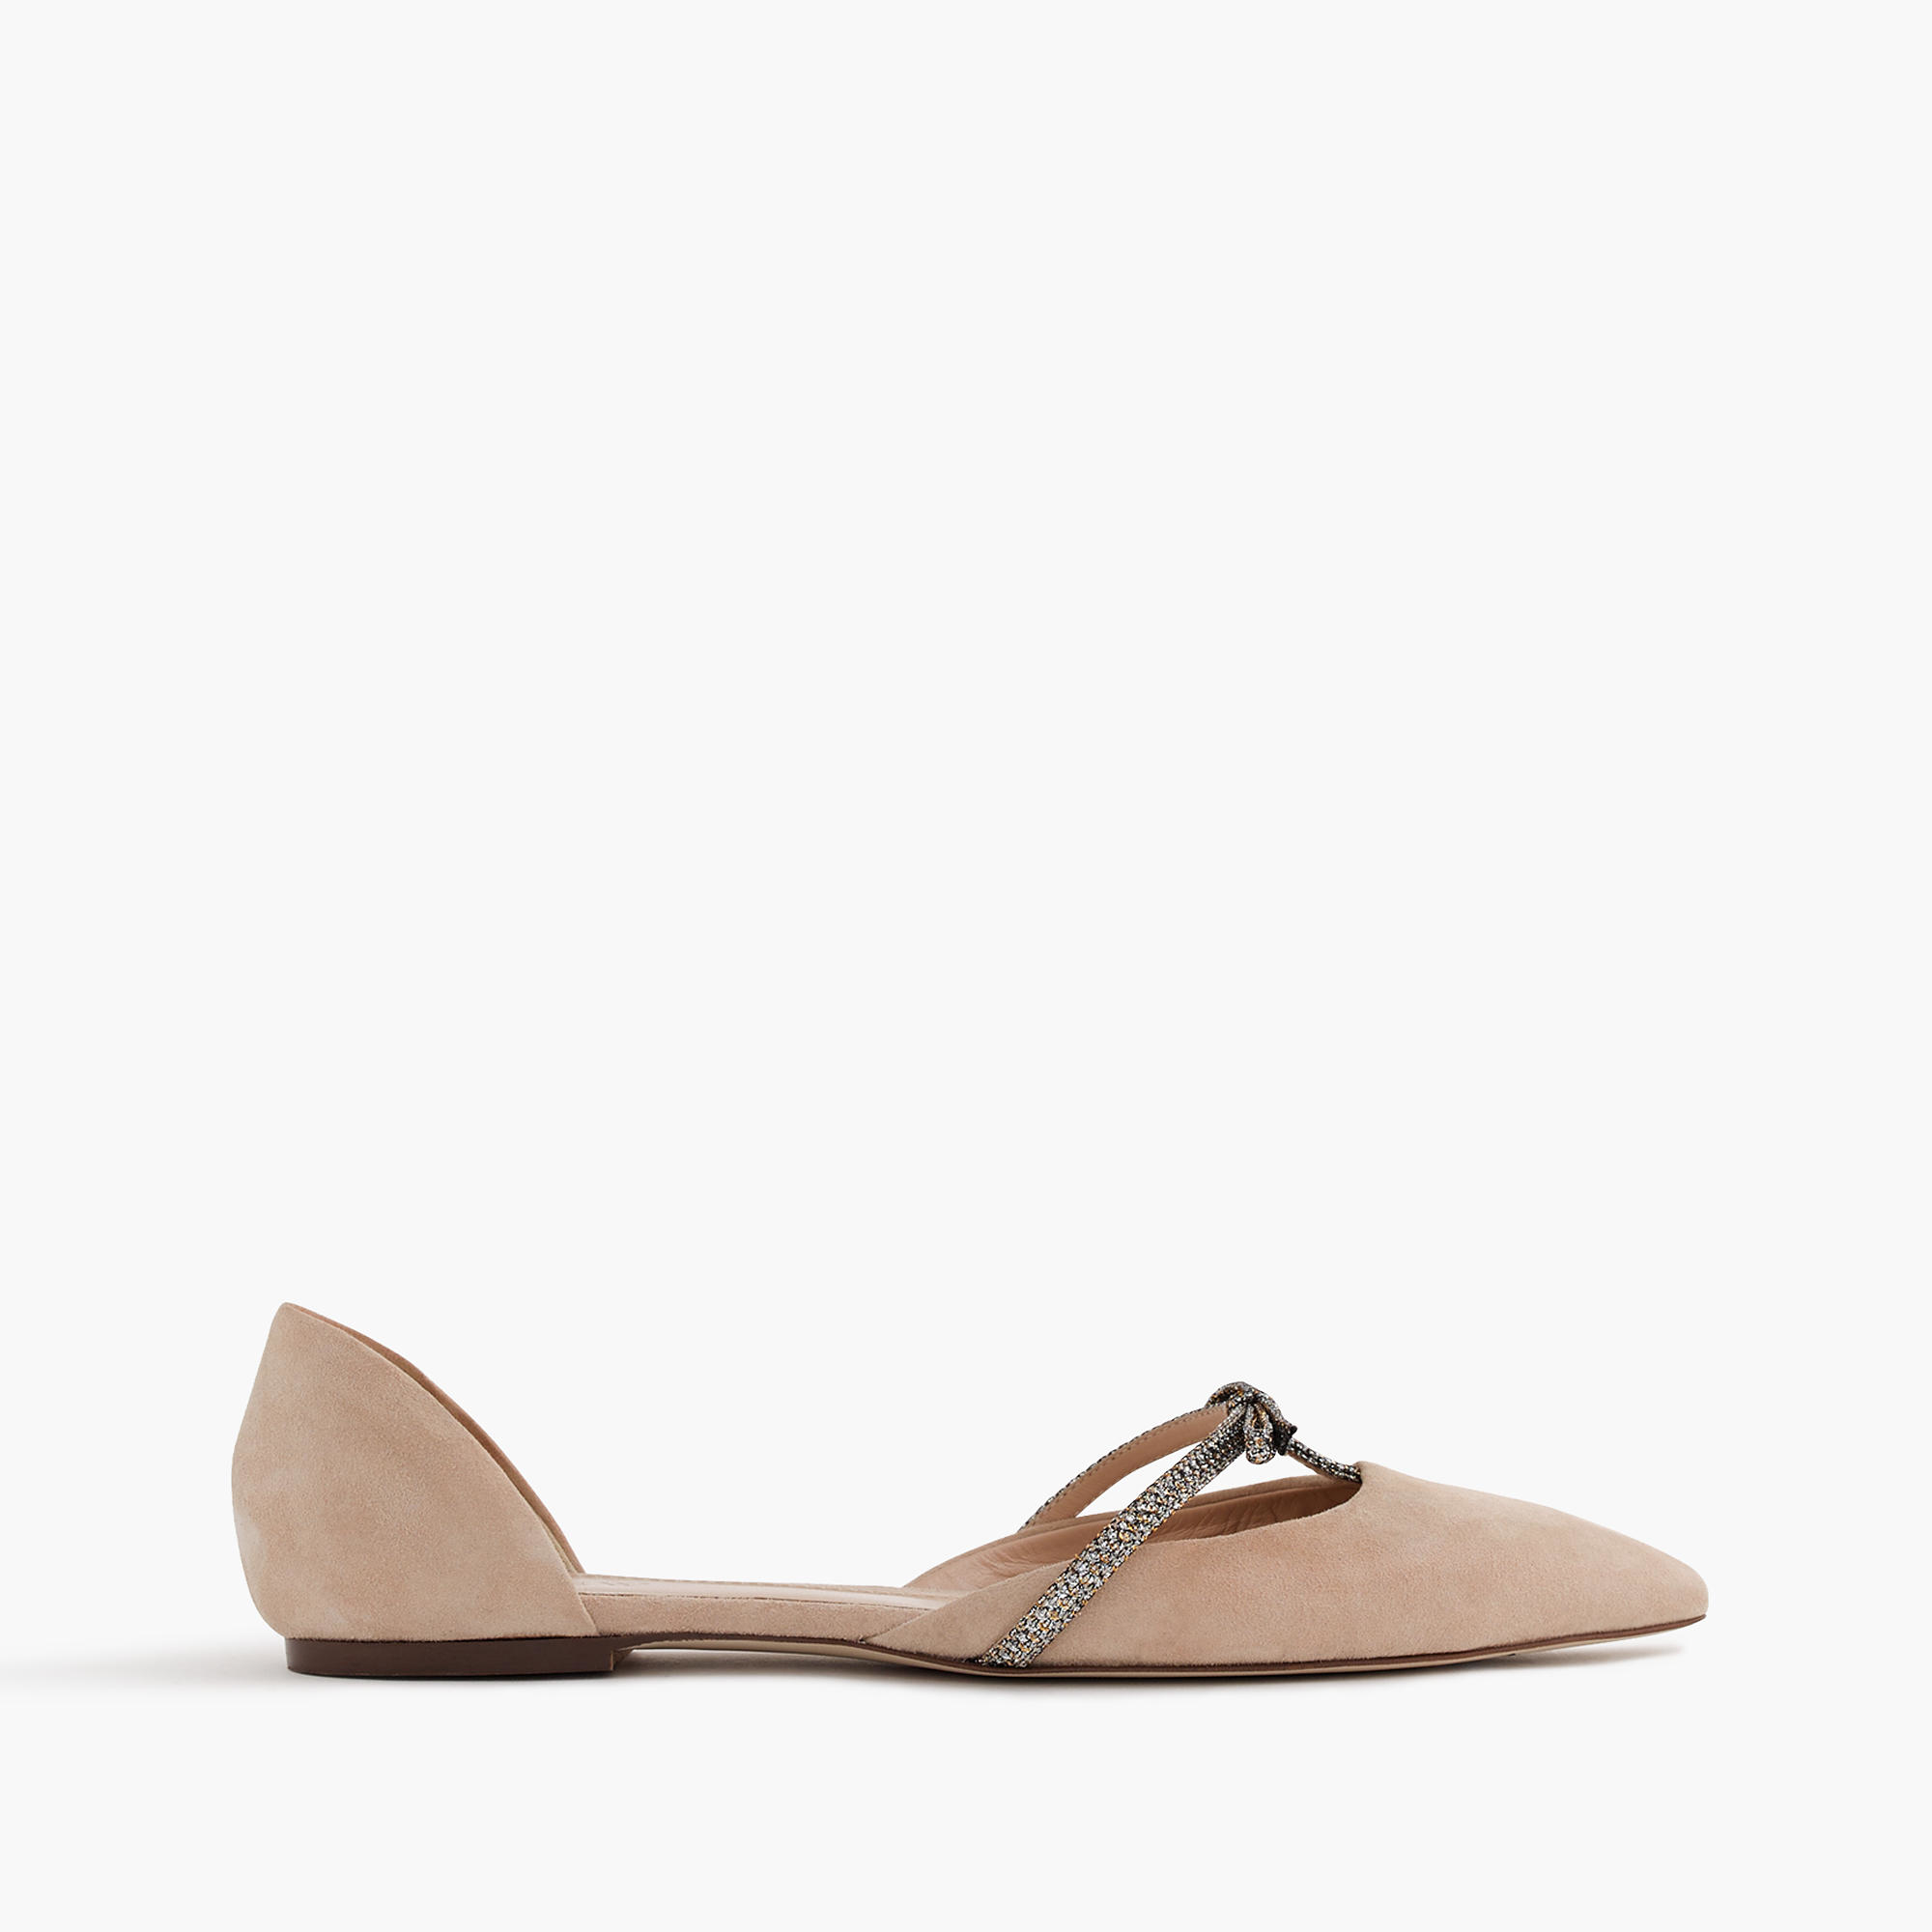 1705caef17d636 Lyst - J.Crew Sloan Suede D orsay Flats With Mini Bow in Natural